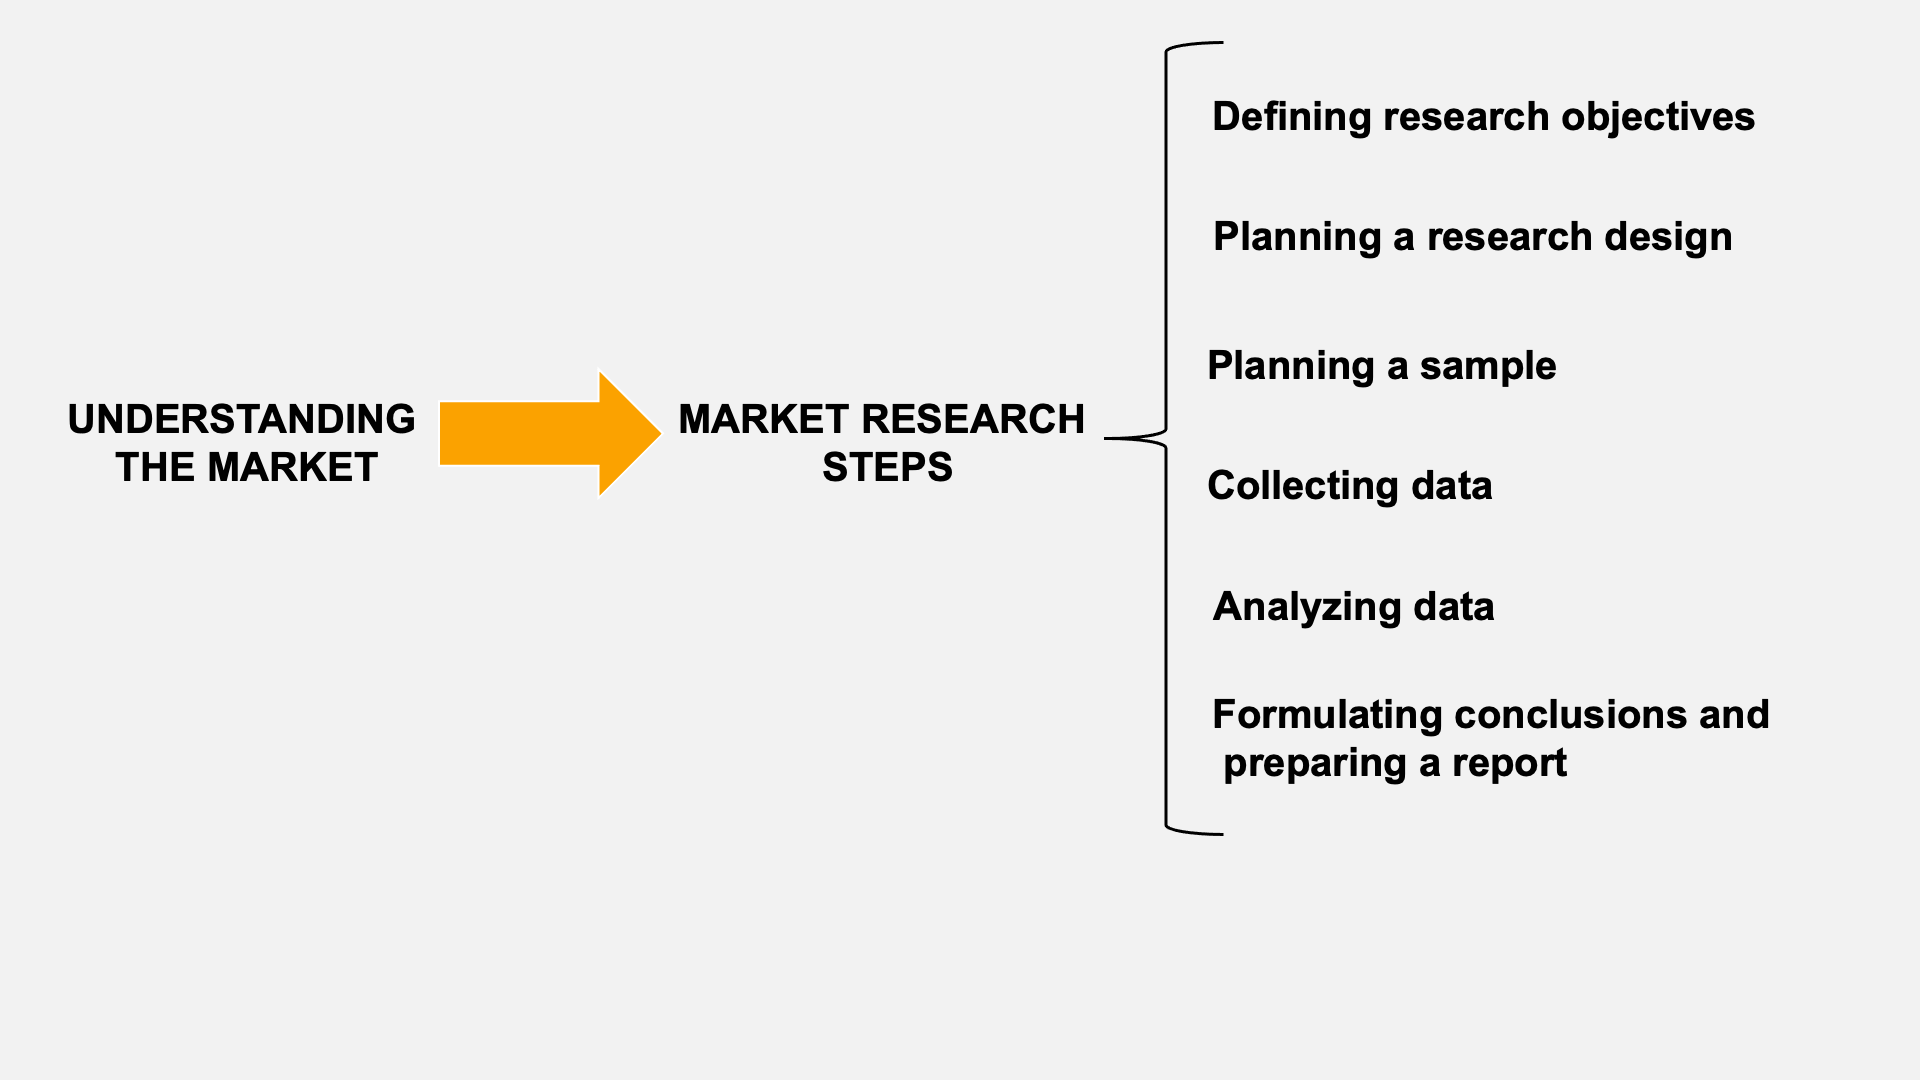 go to market (market research steps)